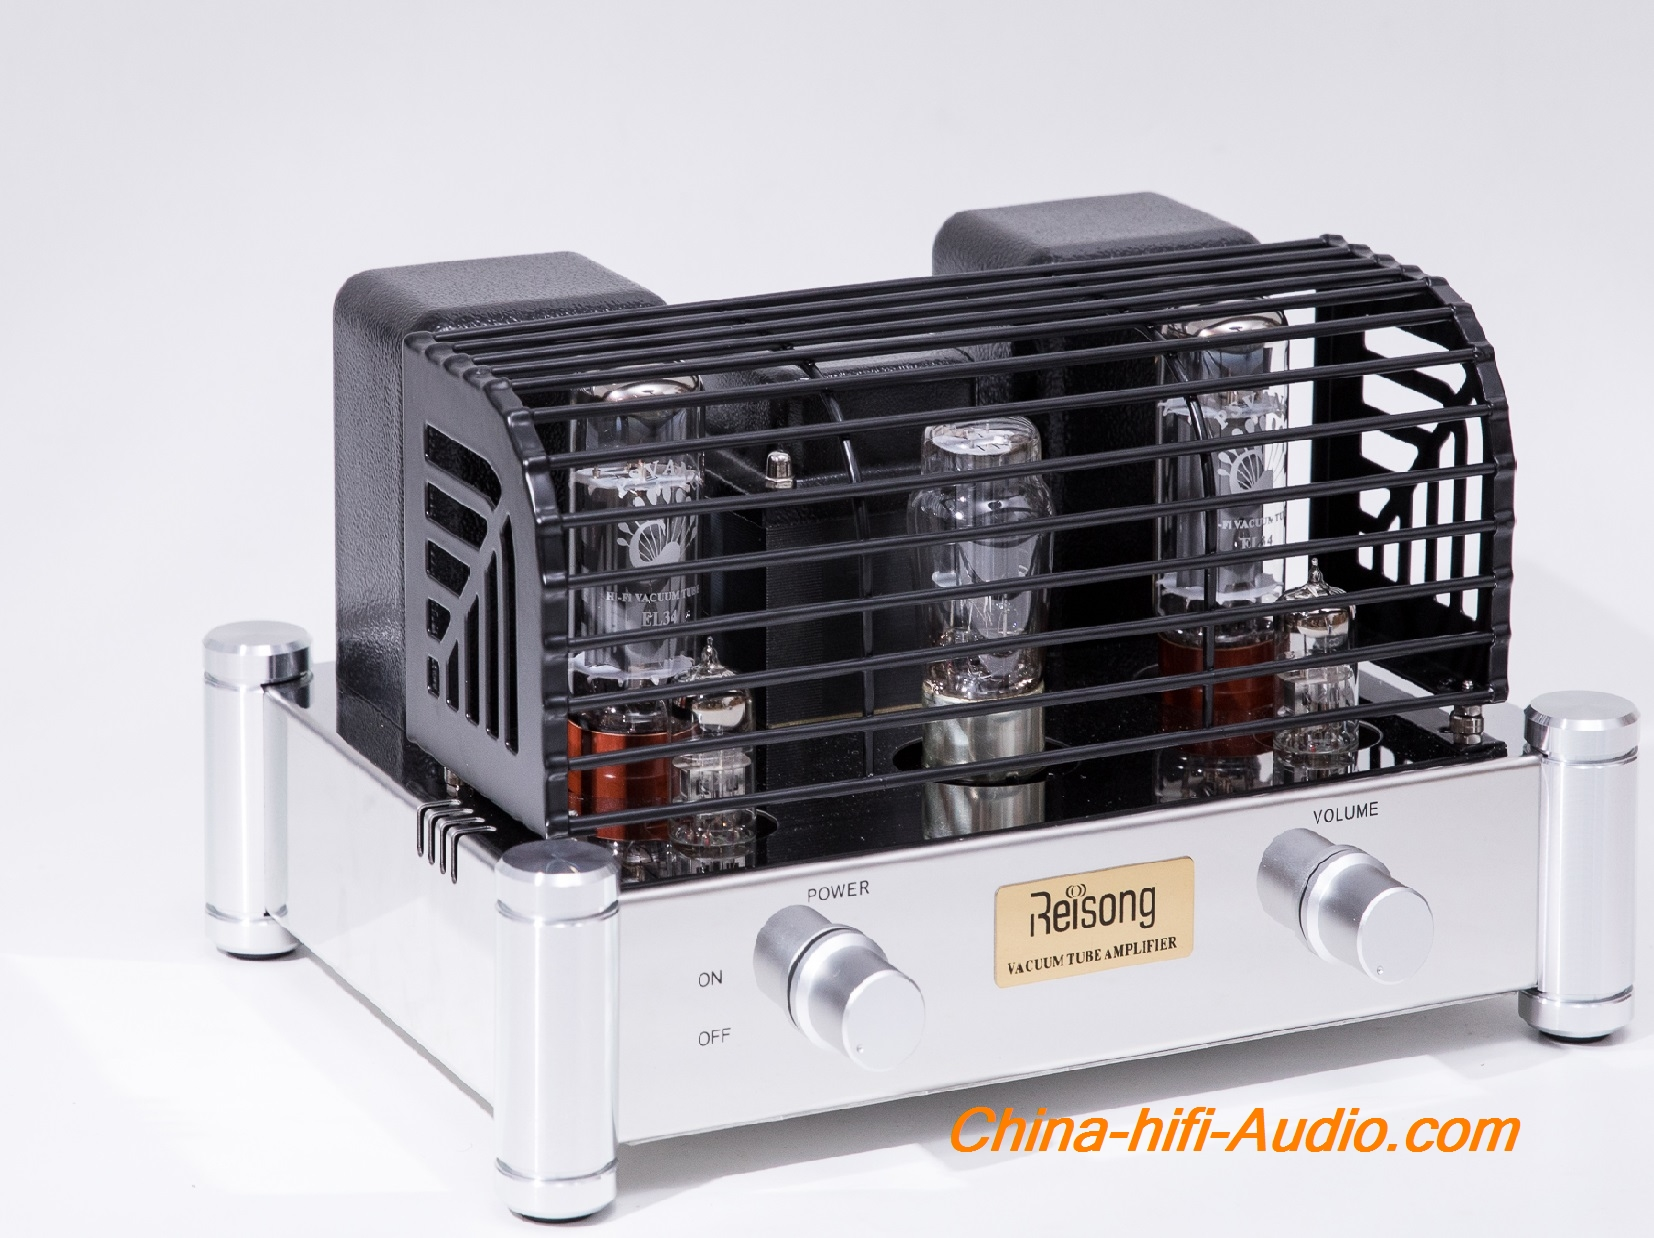 Reisong A12 12AX7(ECC83) EL34 Tube Integrated Amplifier single-ended Class A Boy